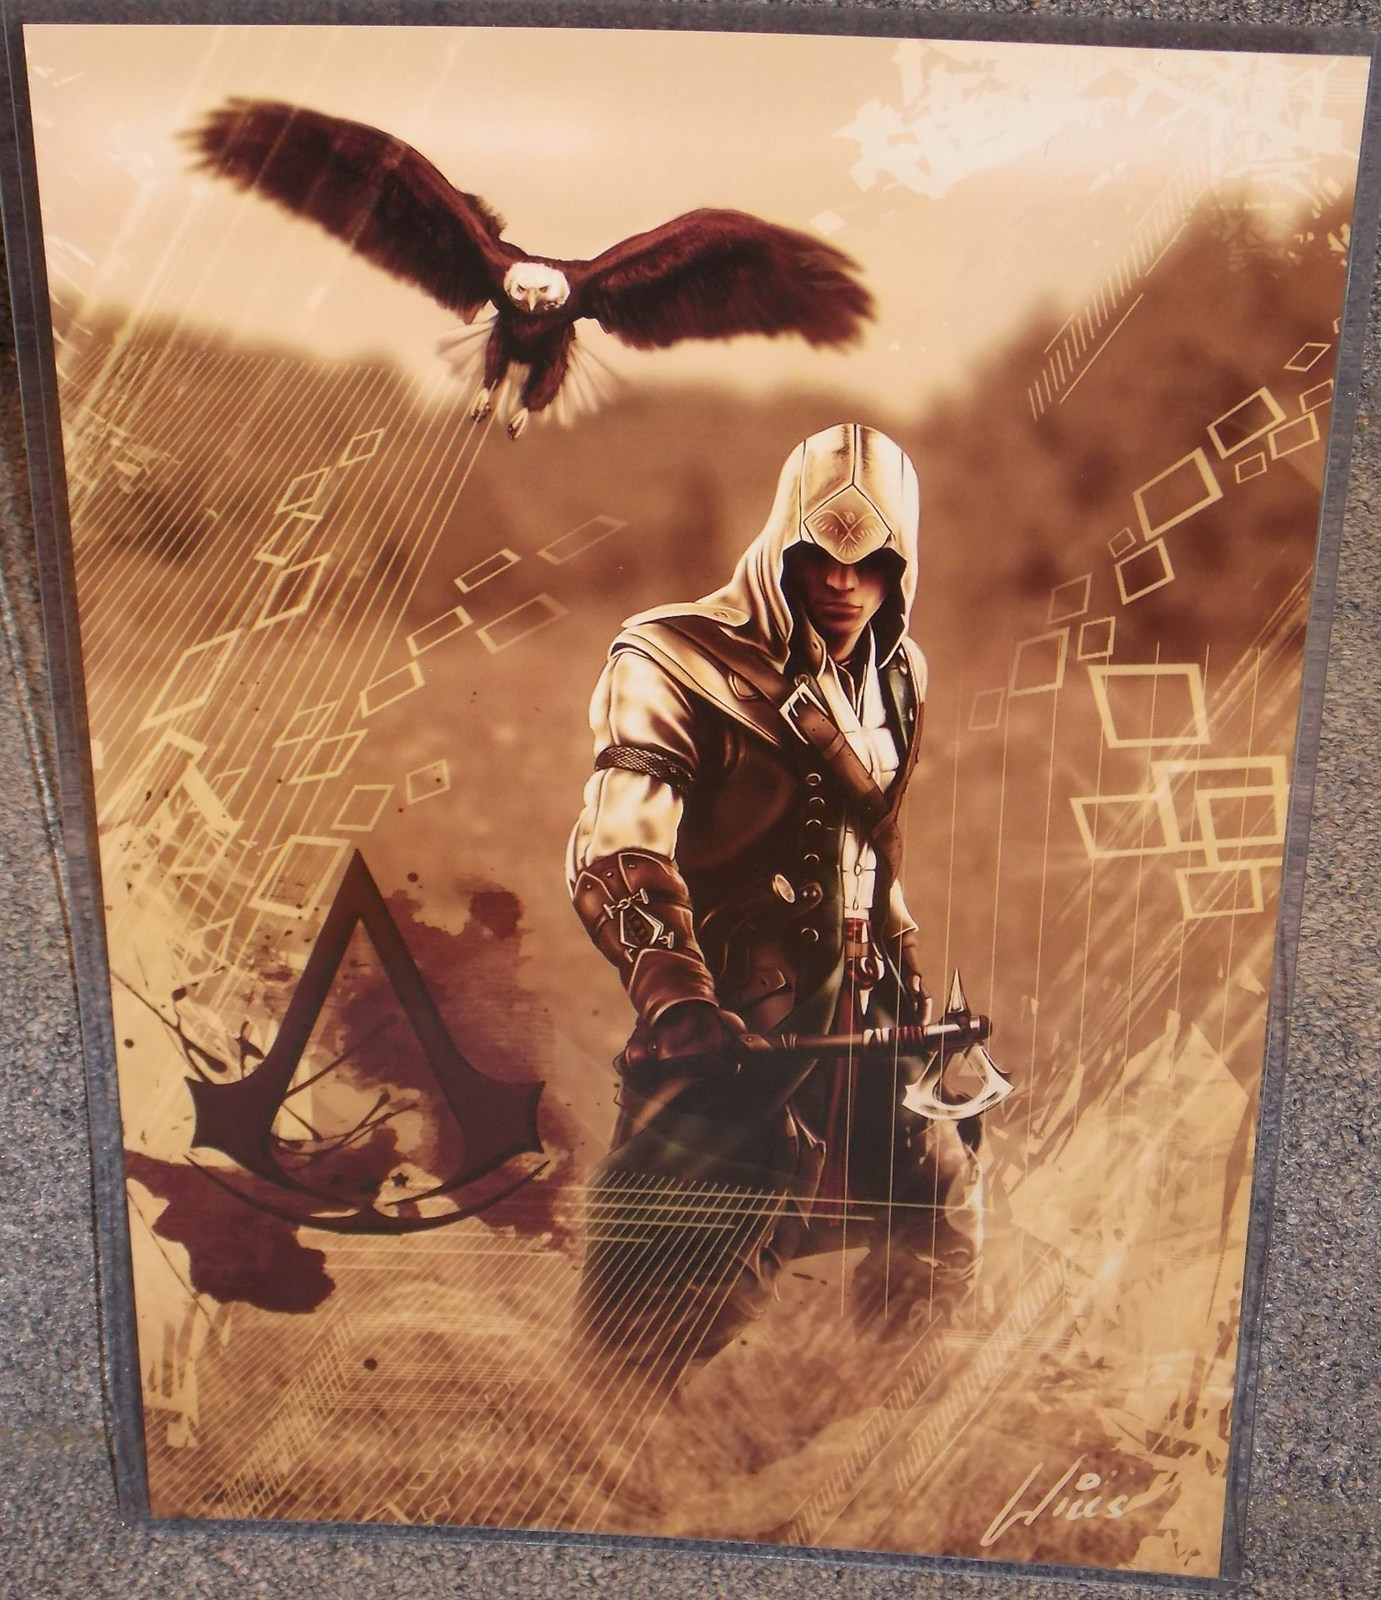 Primary image for Assassins Creed Glossy Print 11 x 17 In Hard Plastic Sleeve